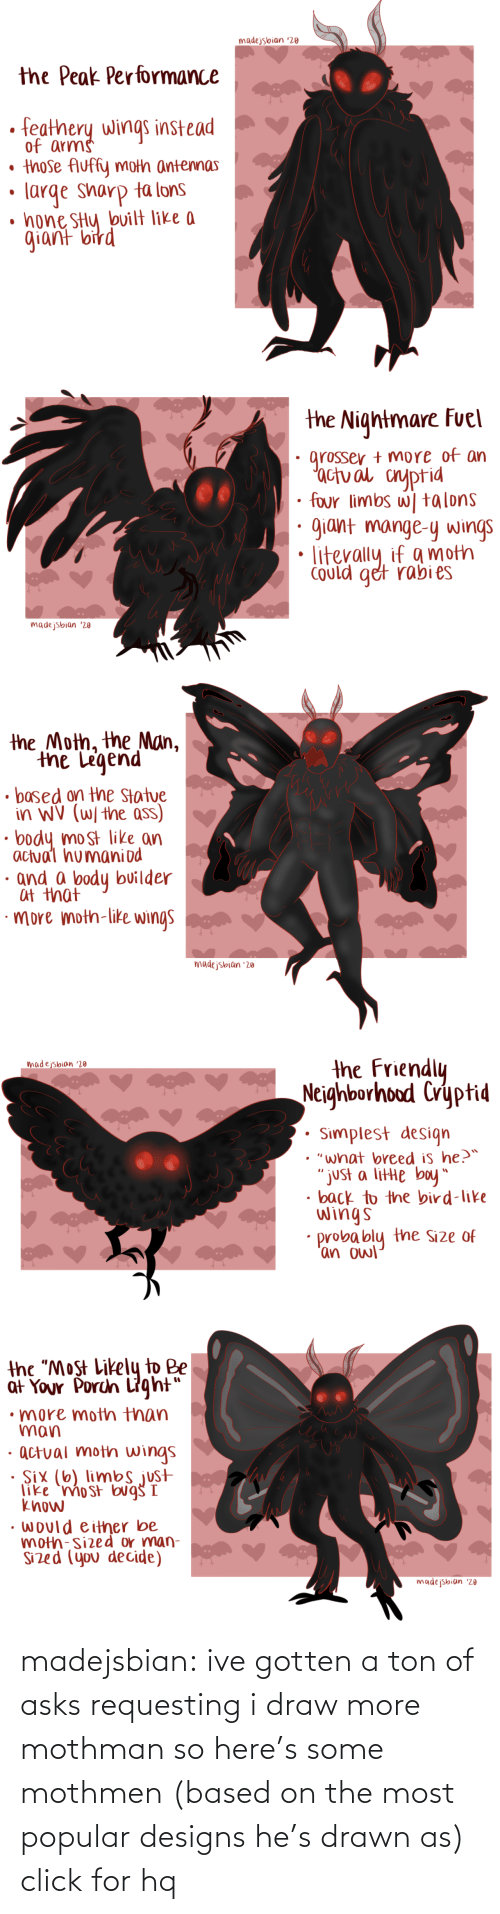 "arms: madejsbian '20  the Peak Performance  feathery wings instead  of arms  • those Auffy moth antennas  large sharp ta lons  • hone SHy bvilt like a  giant bird   the Nightmare Fuel  grosser + more of an  'actual cnyptid  four limbs w| talons  giant mange-y wings  Could get rabi es  madejsbian '20   the Moth, the Man,  the Legend  • based on the Statue  in WV (W/ the ass)  body most like an  actual humaniod  · and a body builder  at that  ·more moth-like wings  madejsbian '20   the Friendly  Neighborhood Cryptid  madejsbian '20  Simplest design  • ""what breed is he?™  ""just a litte boy""  • back to the bird-like  wings  probably the Size of  'an owl   the ""Most Likely to Be  at Your Porch Light""  •more moth than  man  · actual moth wings  · Six (6) limbs just  like 'mo st bug I  know  • would either be  moth-sized or man-  Sized (you decide)  madejsbian '20 madejsbian: ive gotten a ton of asks requesting i draw more mothman so here's some mothmen (based on the most popular designs he's drawn as)